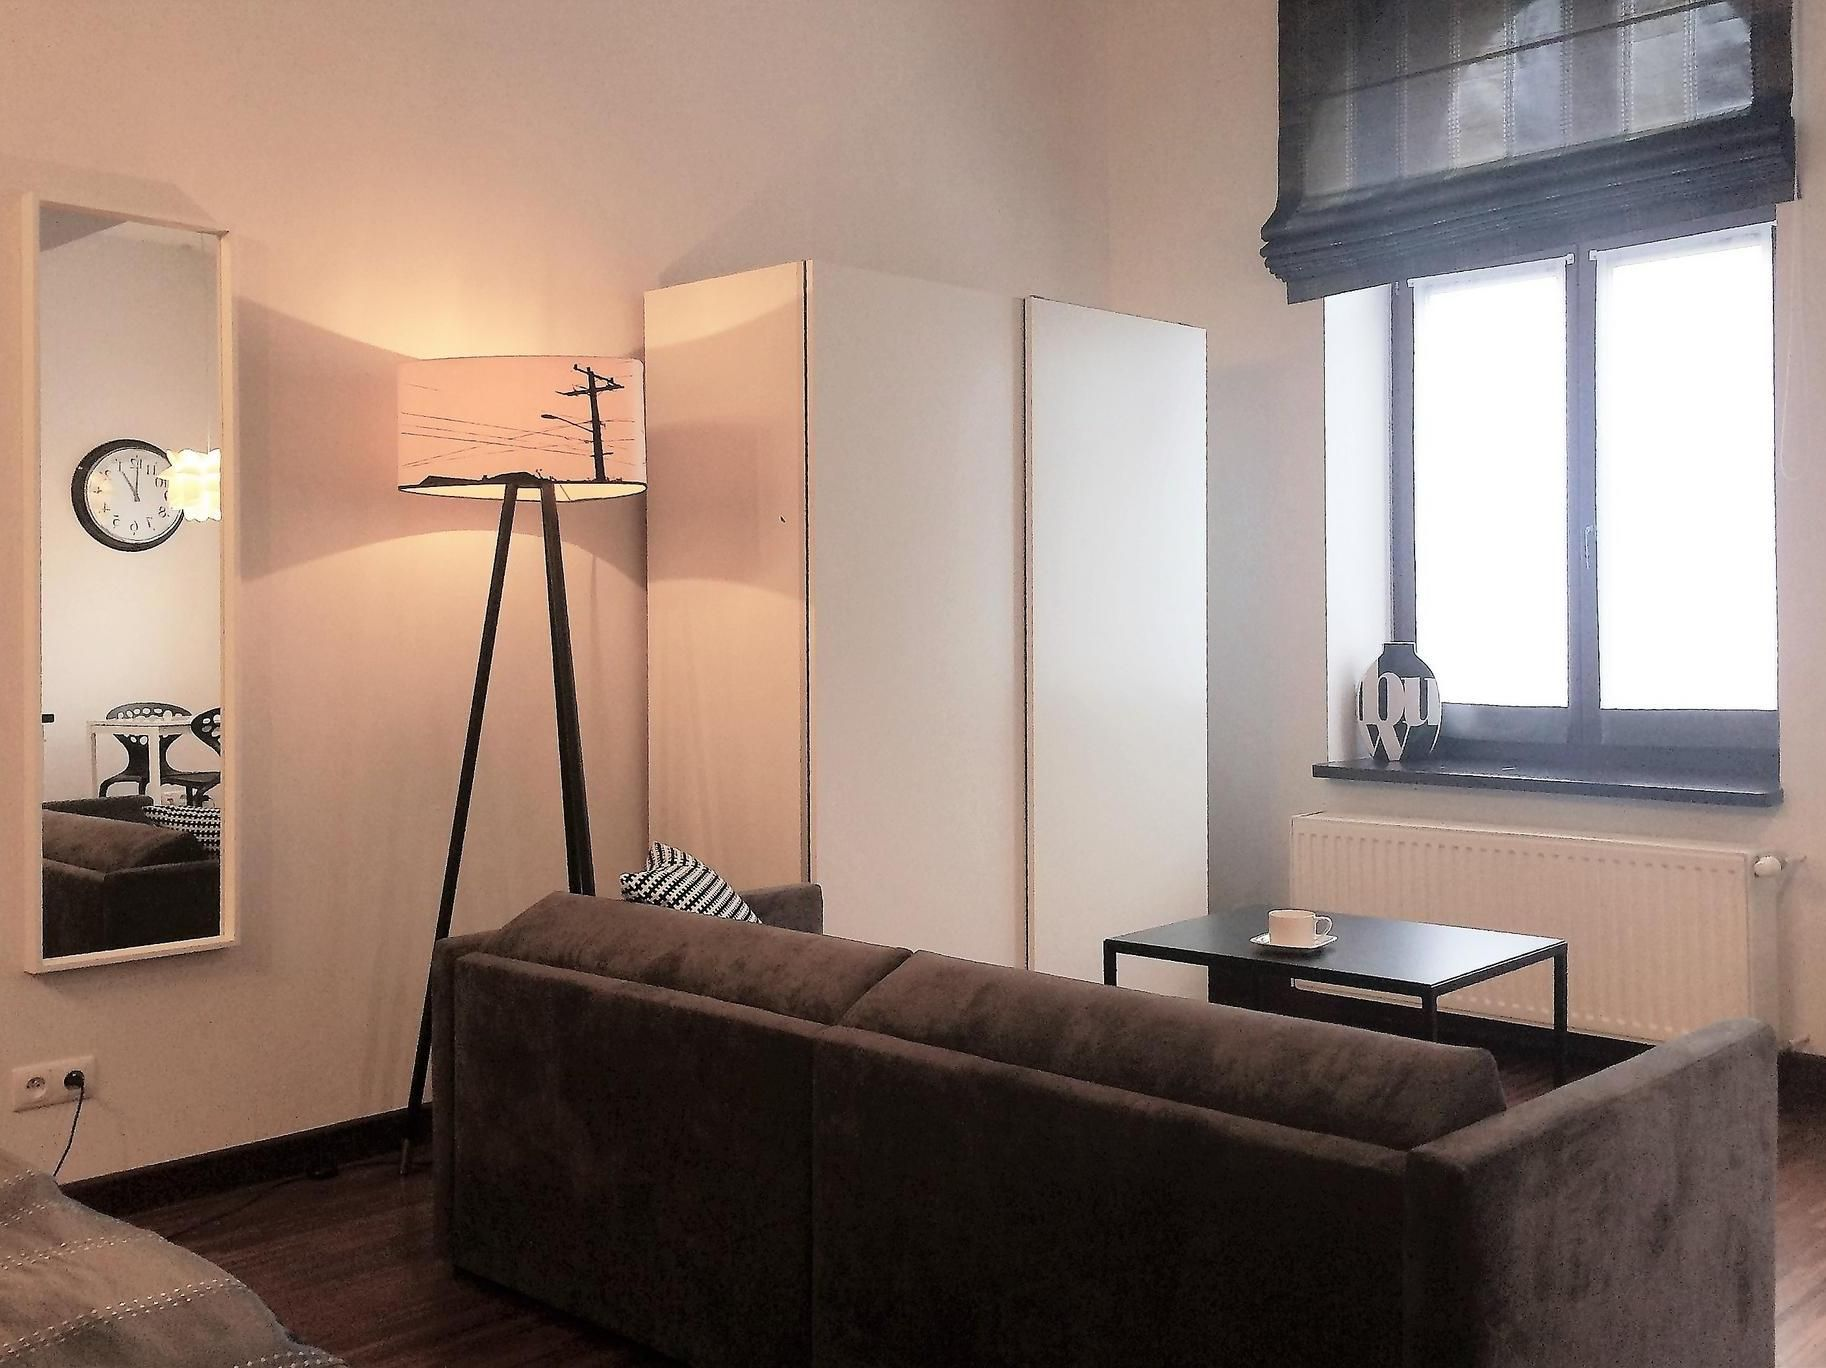 Apartament Black & White , fot. z archiwum Home & Travel Apartments